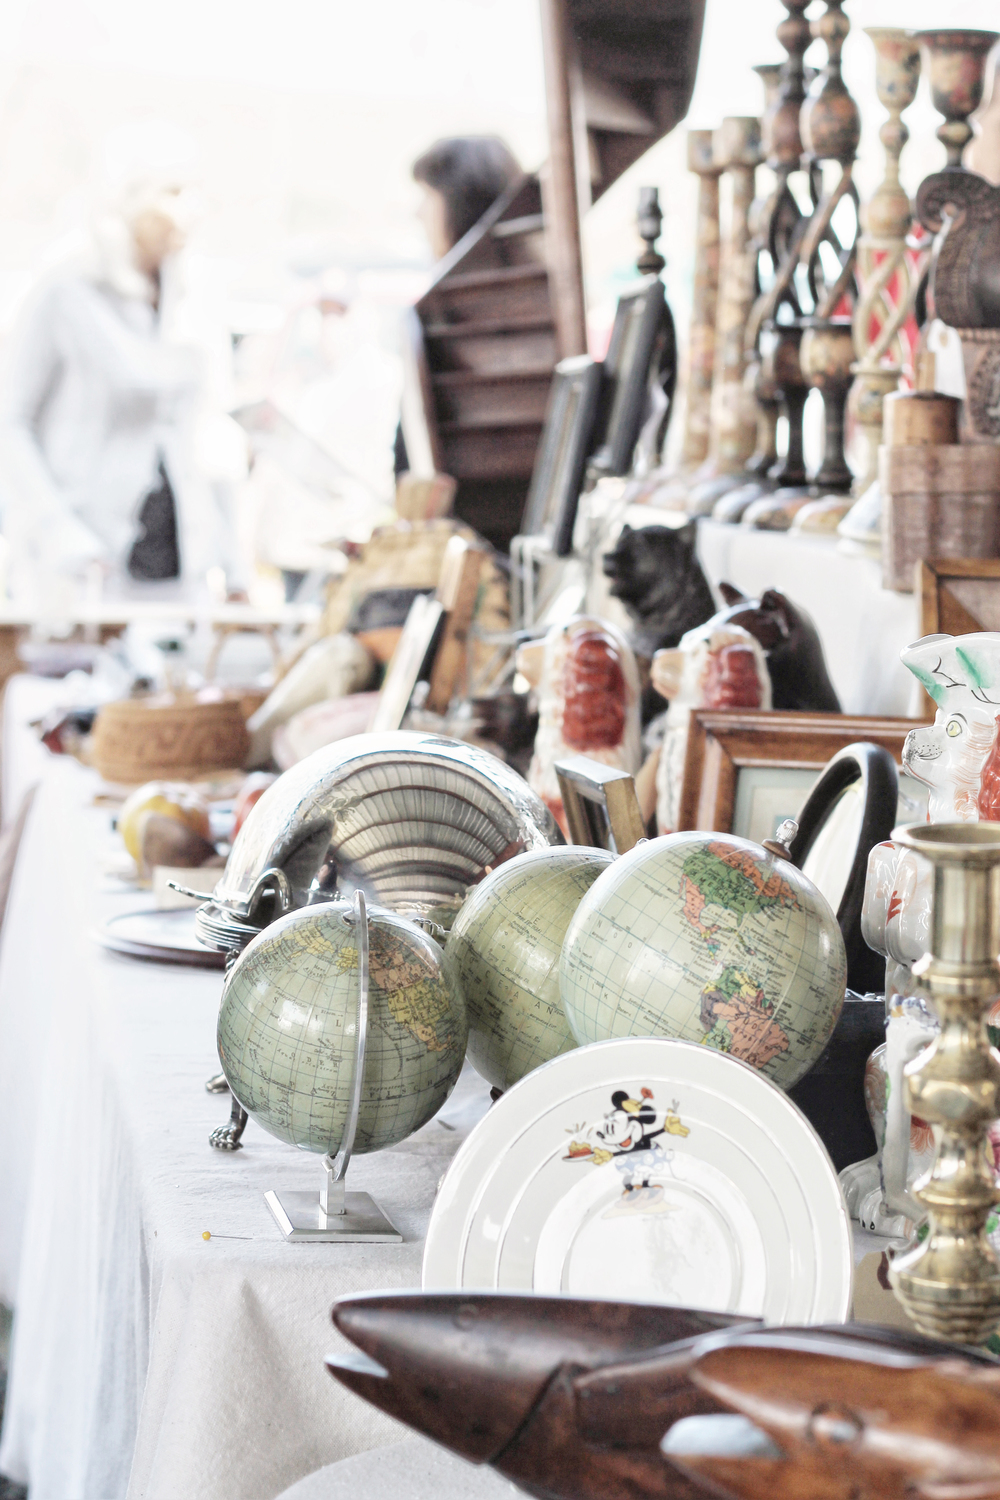 brimfield flea market may 2014 | via: bekuh b.